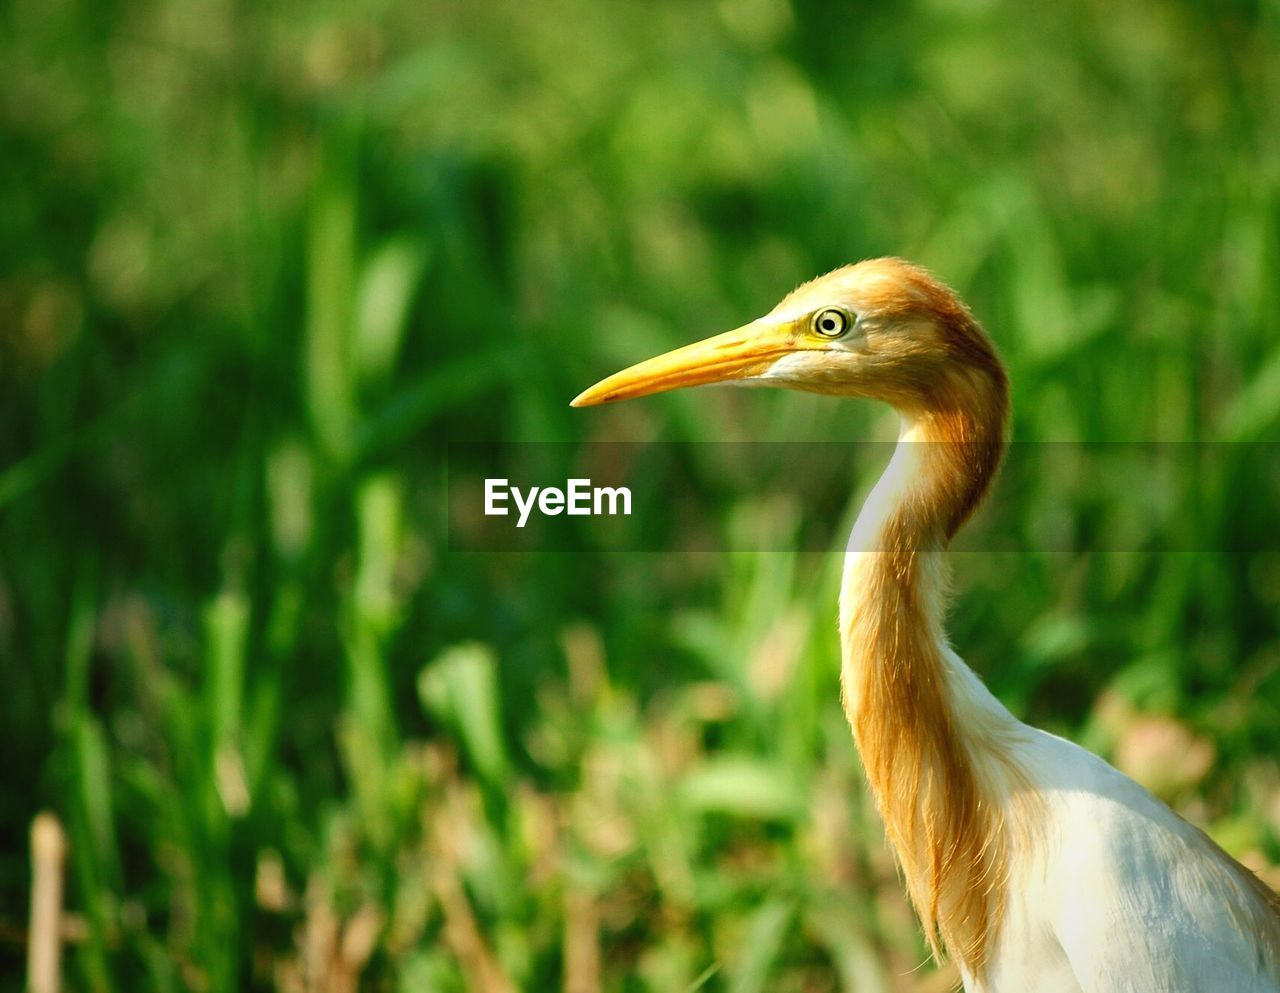 one animal, animal themes, animal wildlife, animal, animals in the wild, vertebrate, bird, focus on foreground, no people, nature, beak, day, close-up, heron, outdoors, water bird, side view, land, green color, beauty in nature, animal neck